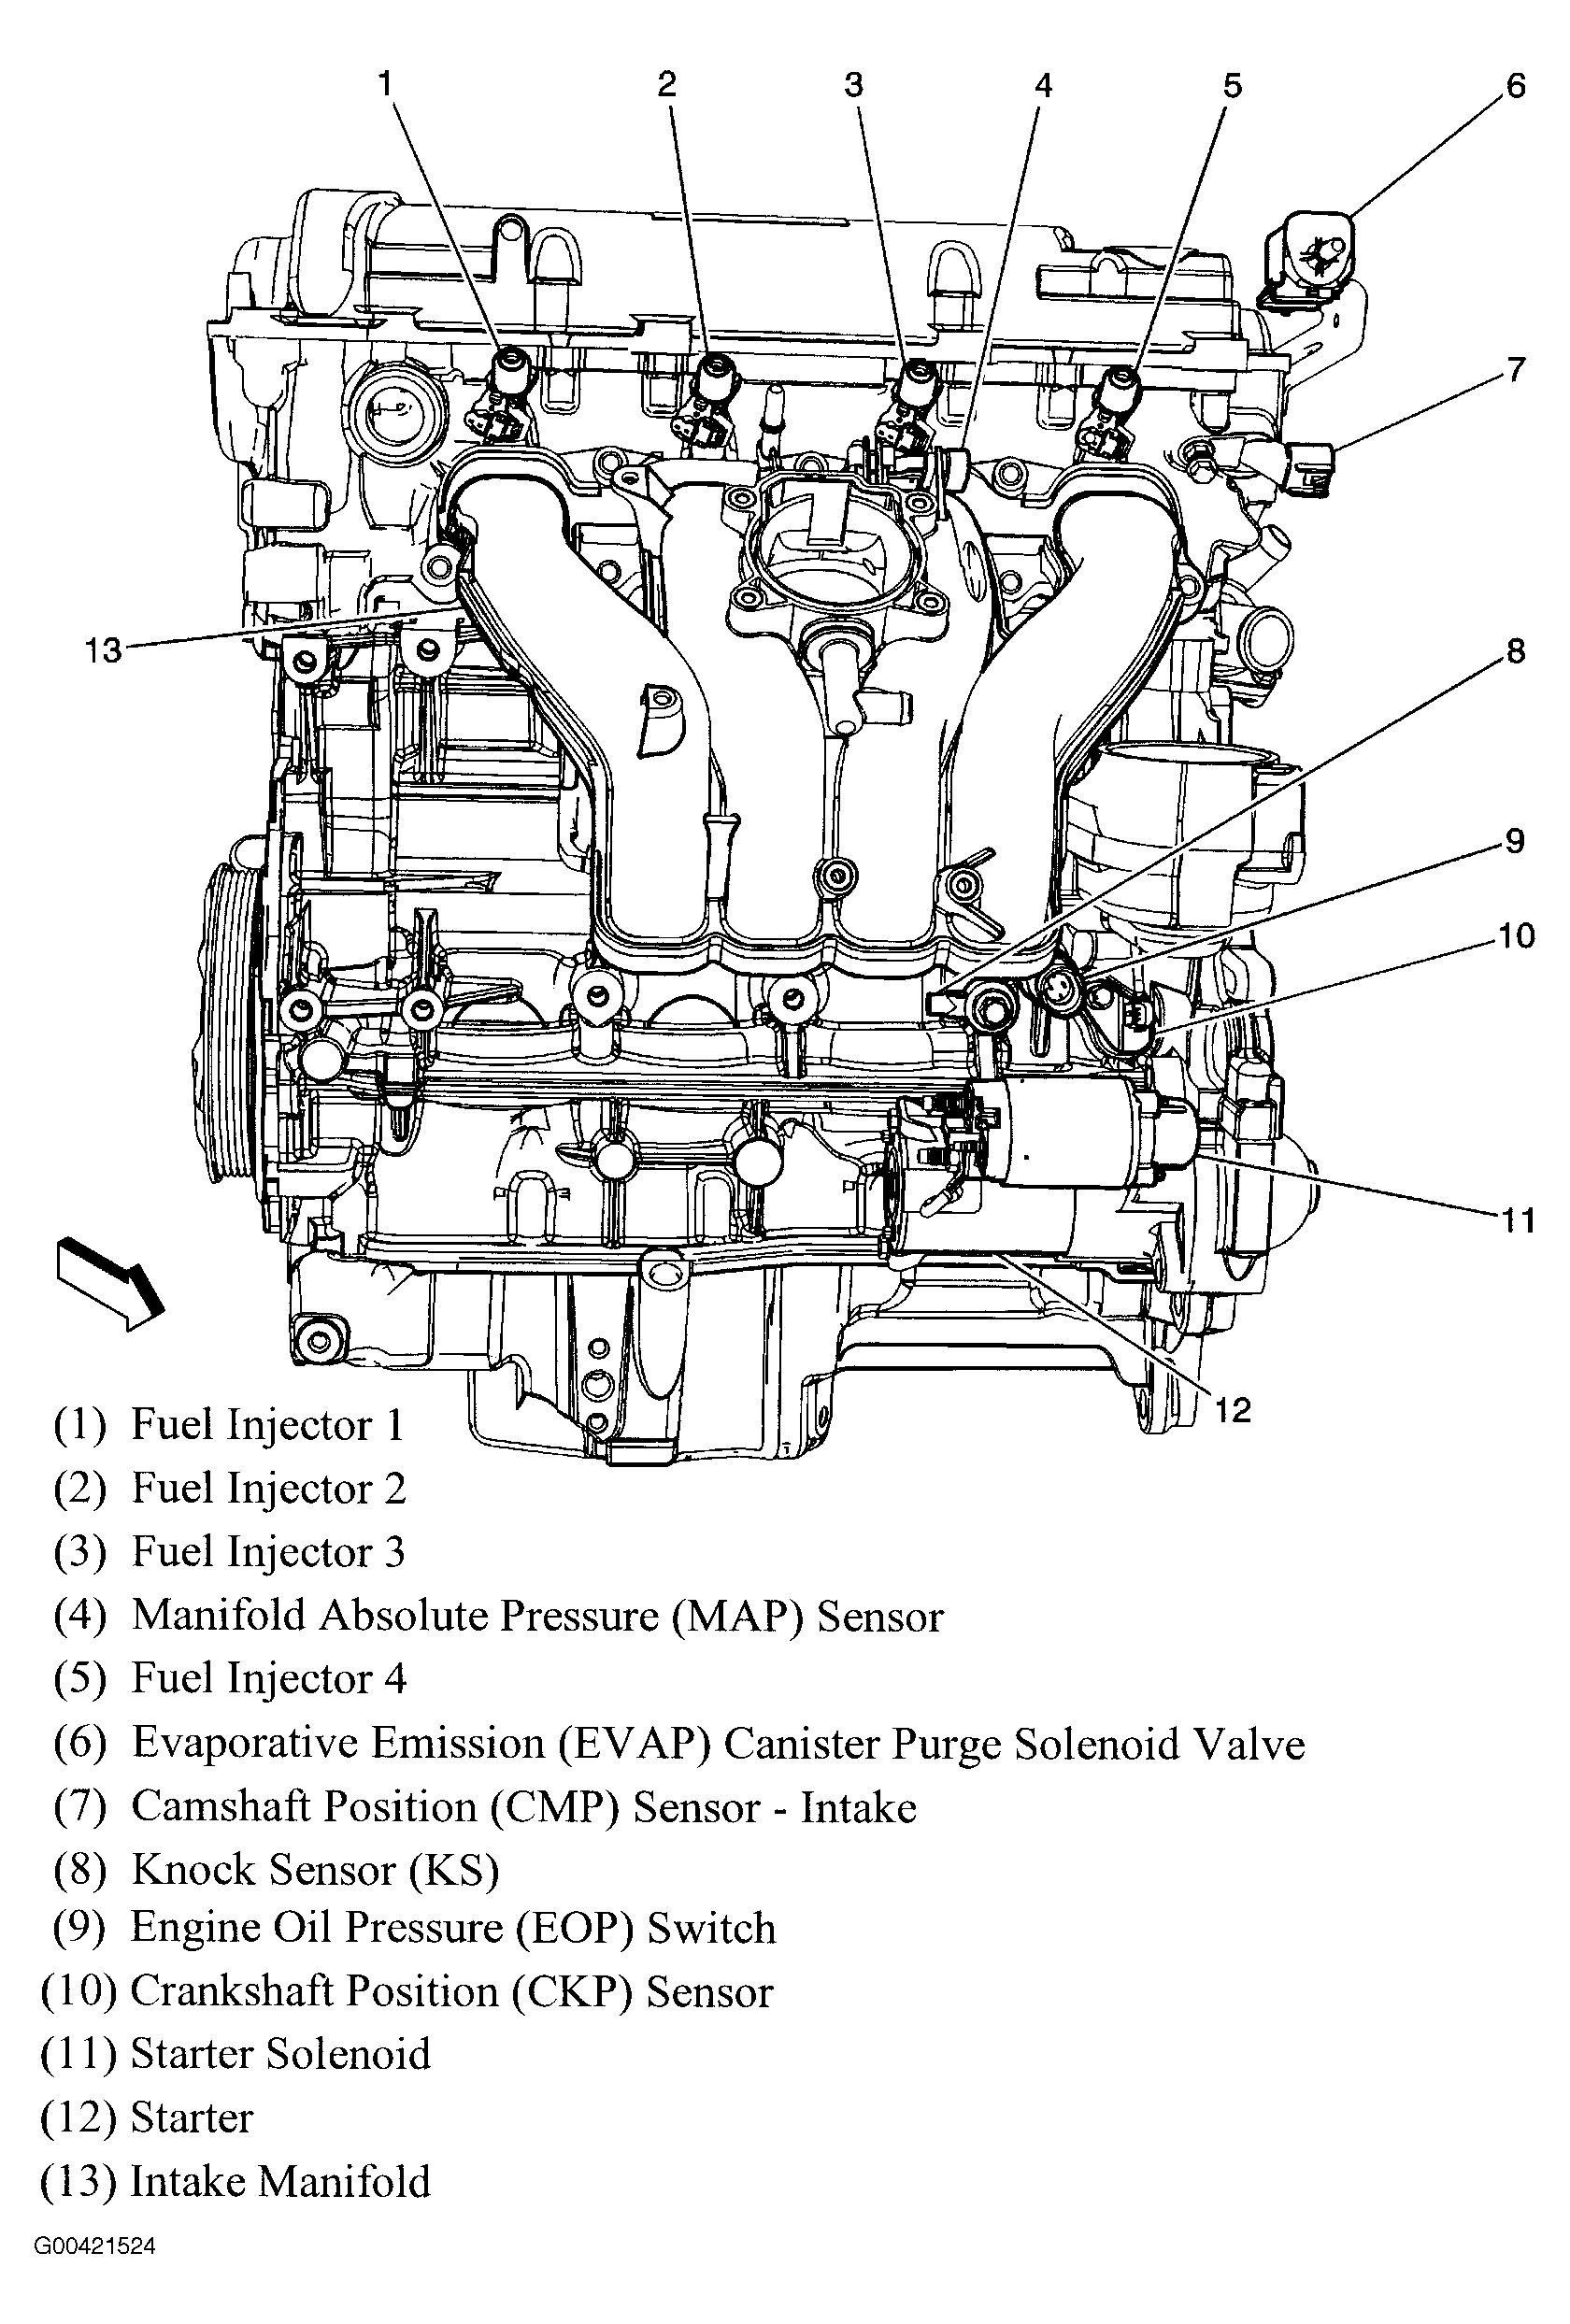 2010 Chevy Aveo Engine Diagram Chevy Cruze Line Diagram Chevy Trailblazer